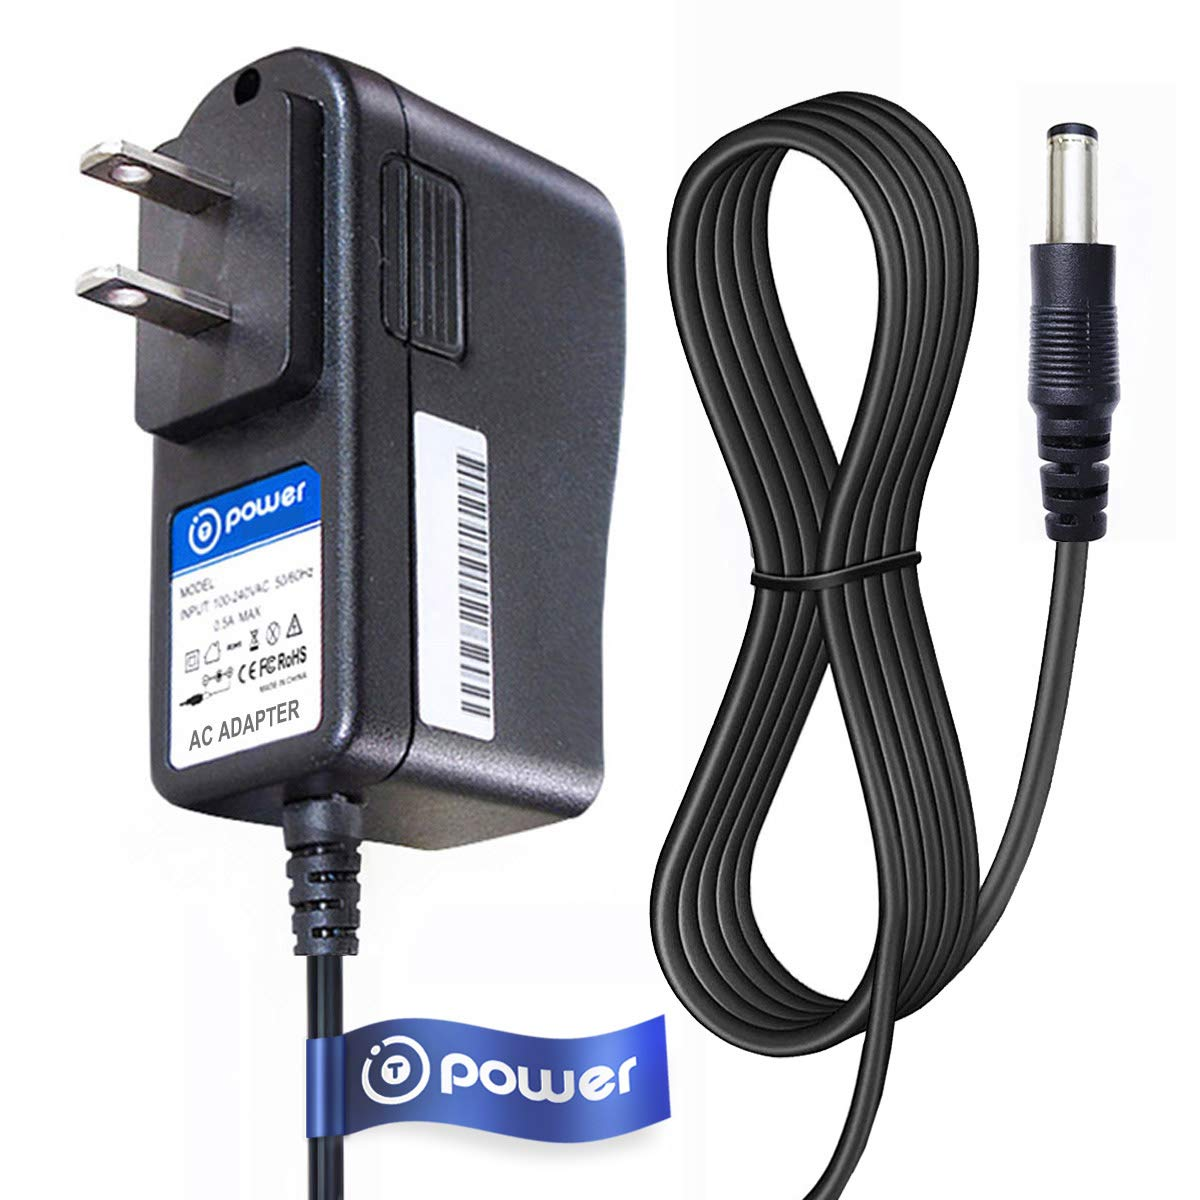 "T-Power Ac Adapter Compatible with 12V DC Adapter Compatible with O2 Cool O2Cool Portable 10"" Cooling Fan 02 Cool 02Cool Charger Power Supply"